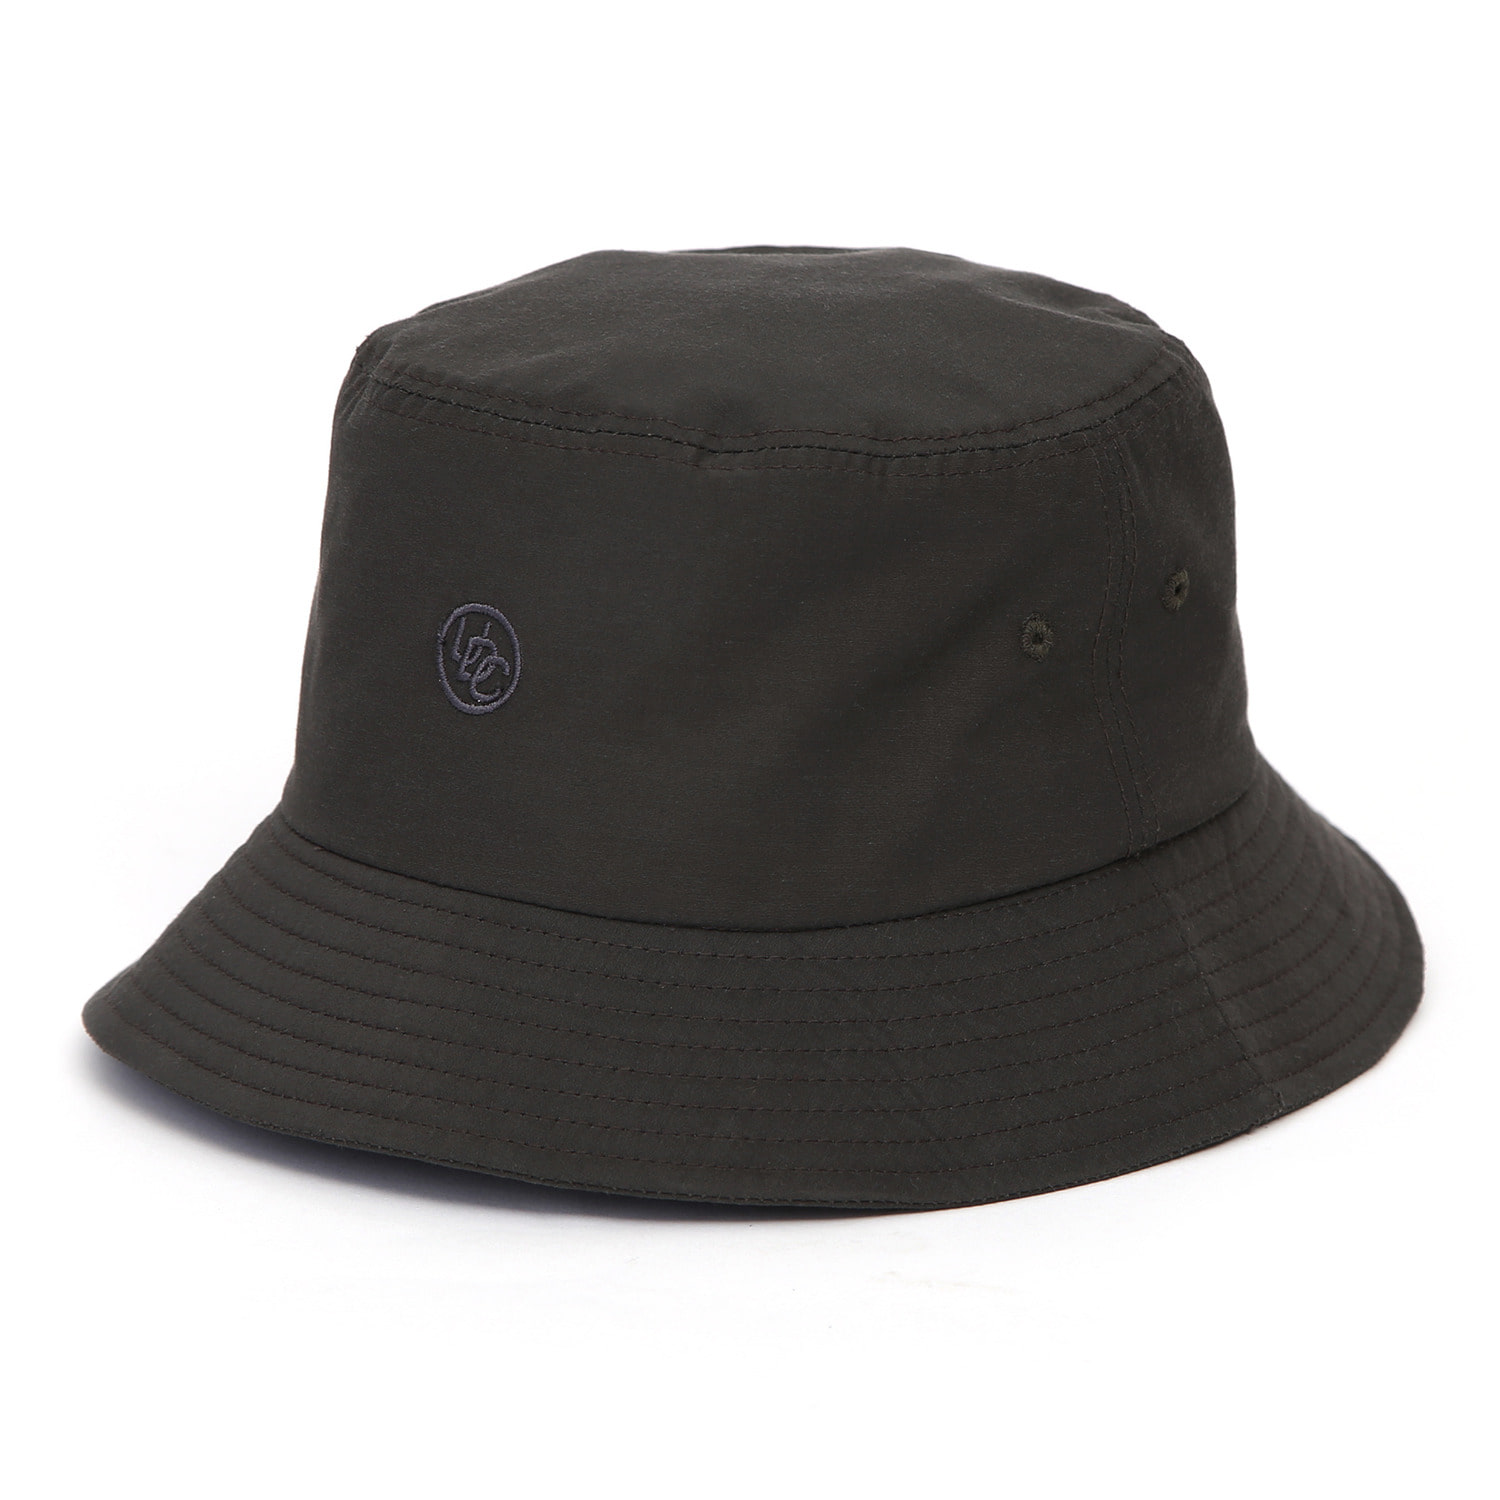 SQUARE BUCKET / UNION UDC / PC / CHARCOAL